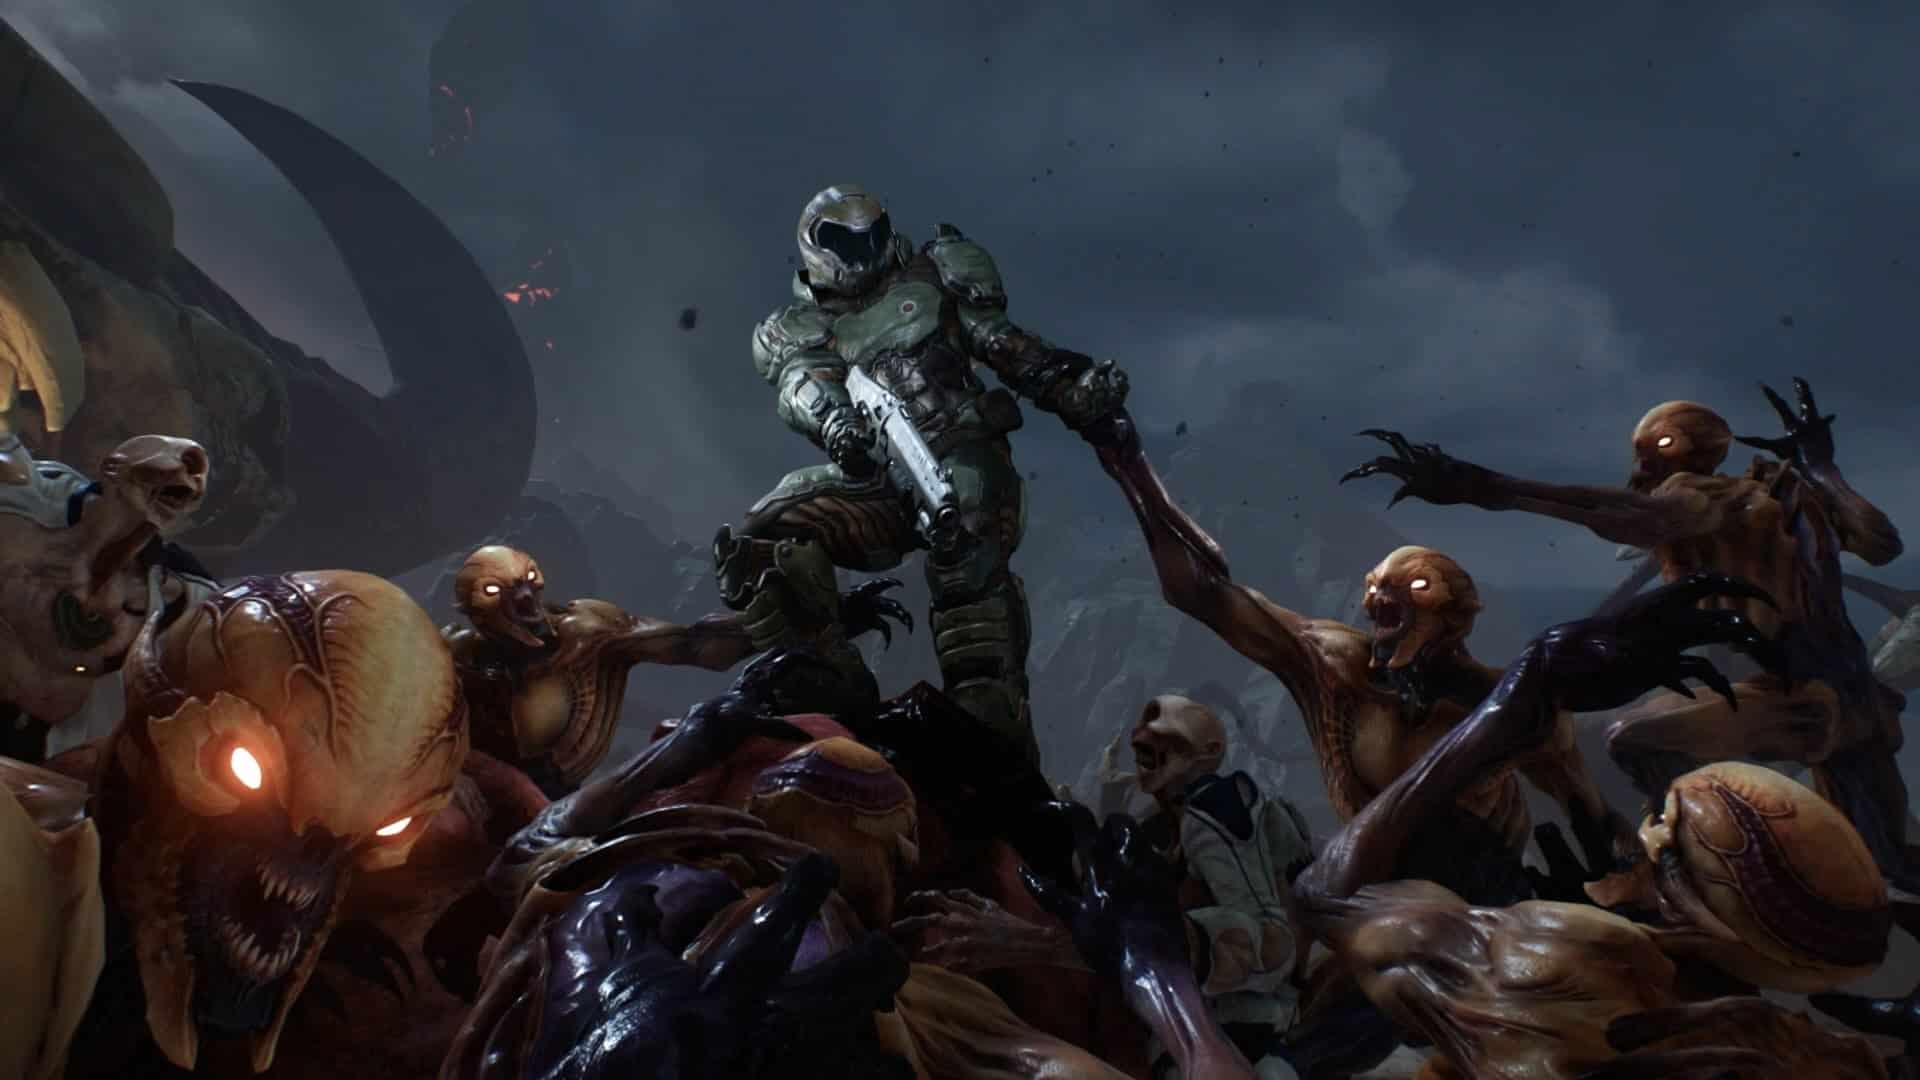 DOOM - Trailer di lancio & Requisiti di Sistema